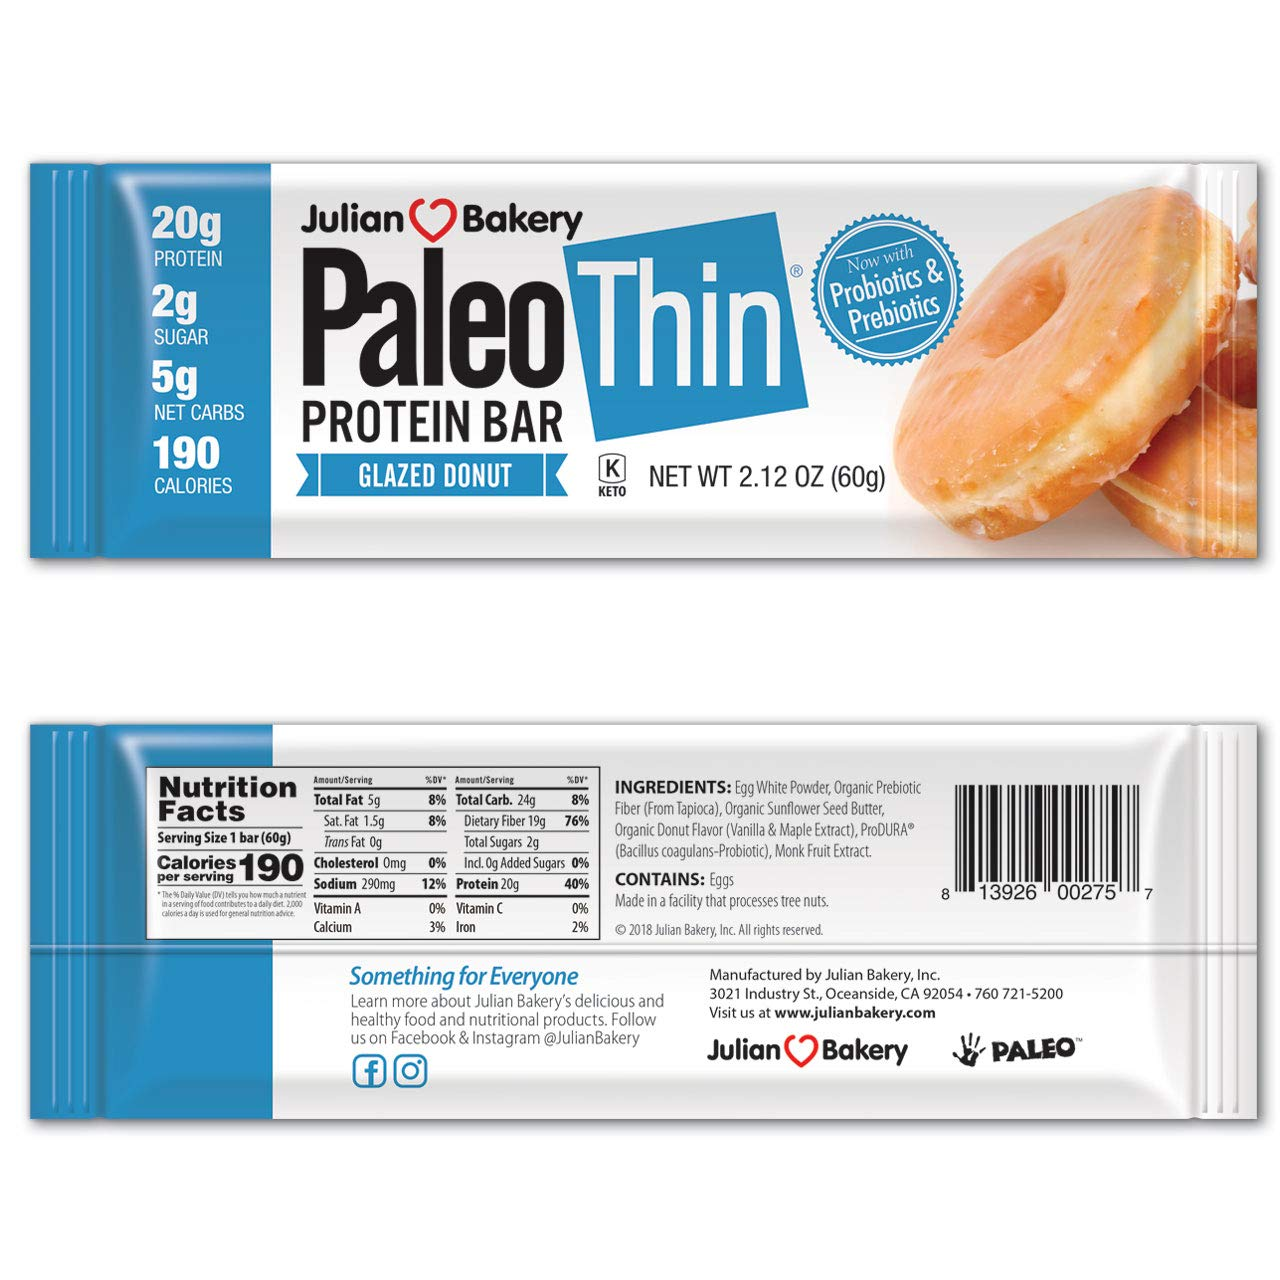 Paleo Thin Protein Bar 20g Egg White Protein , Glazed Donut, Gluten-Free, 190 Calories, 1 Count by Julian Bakery